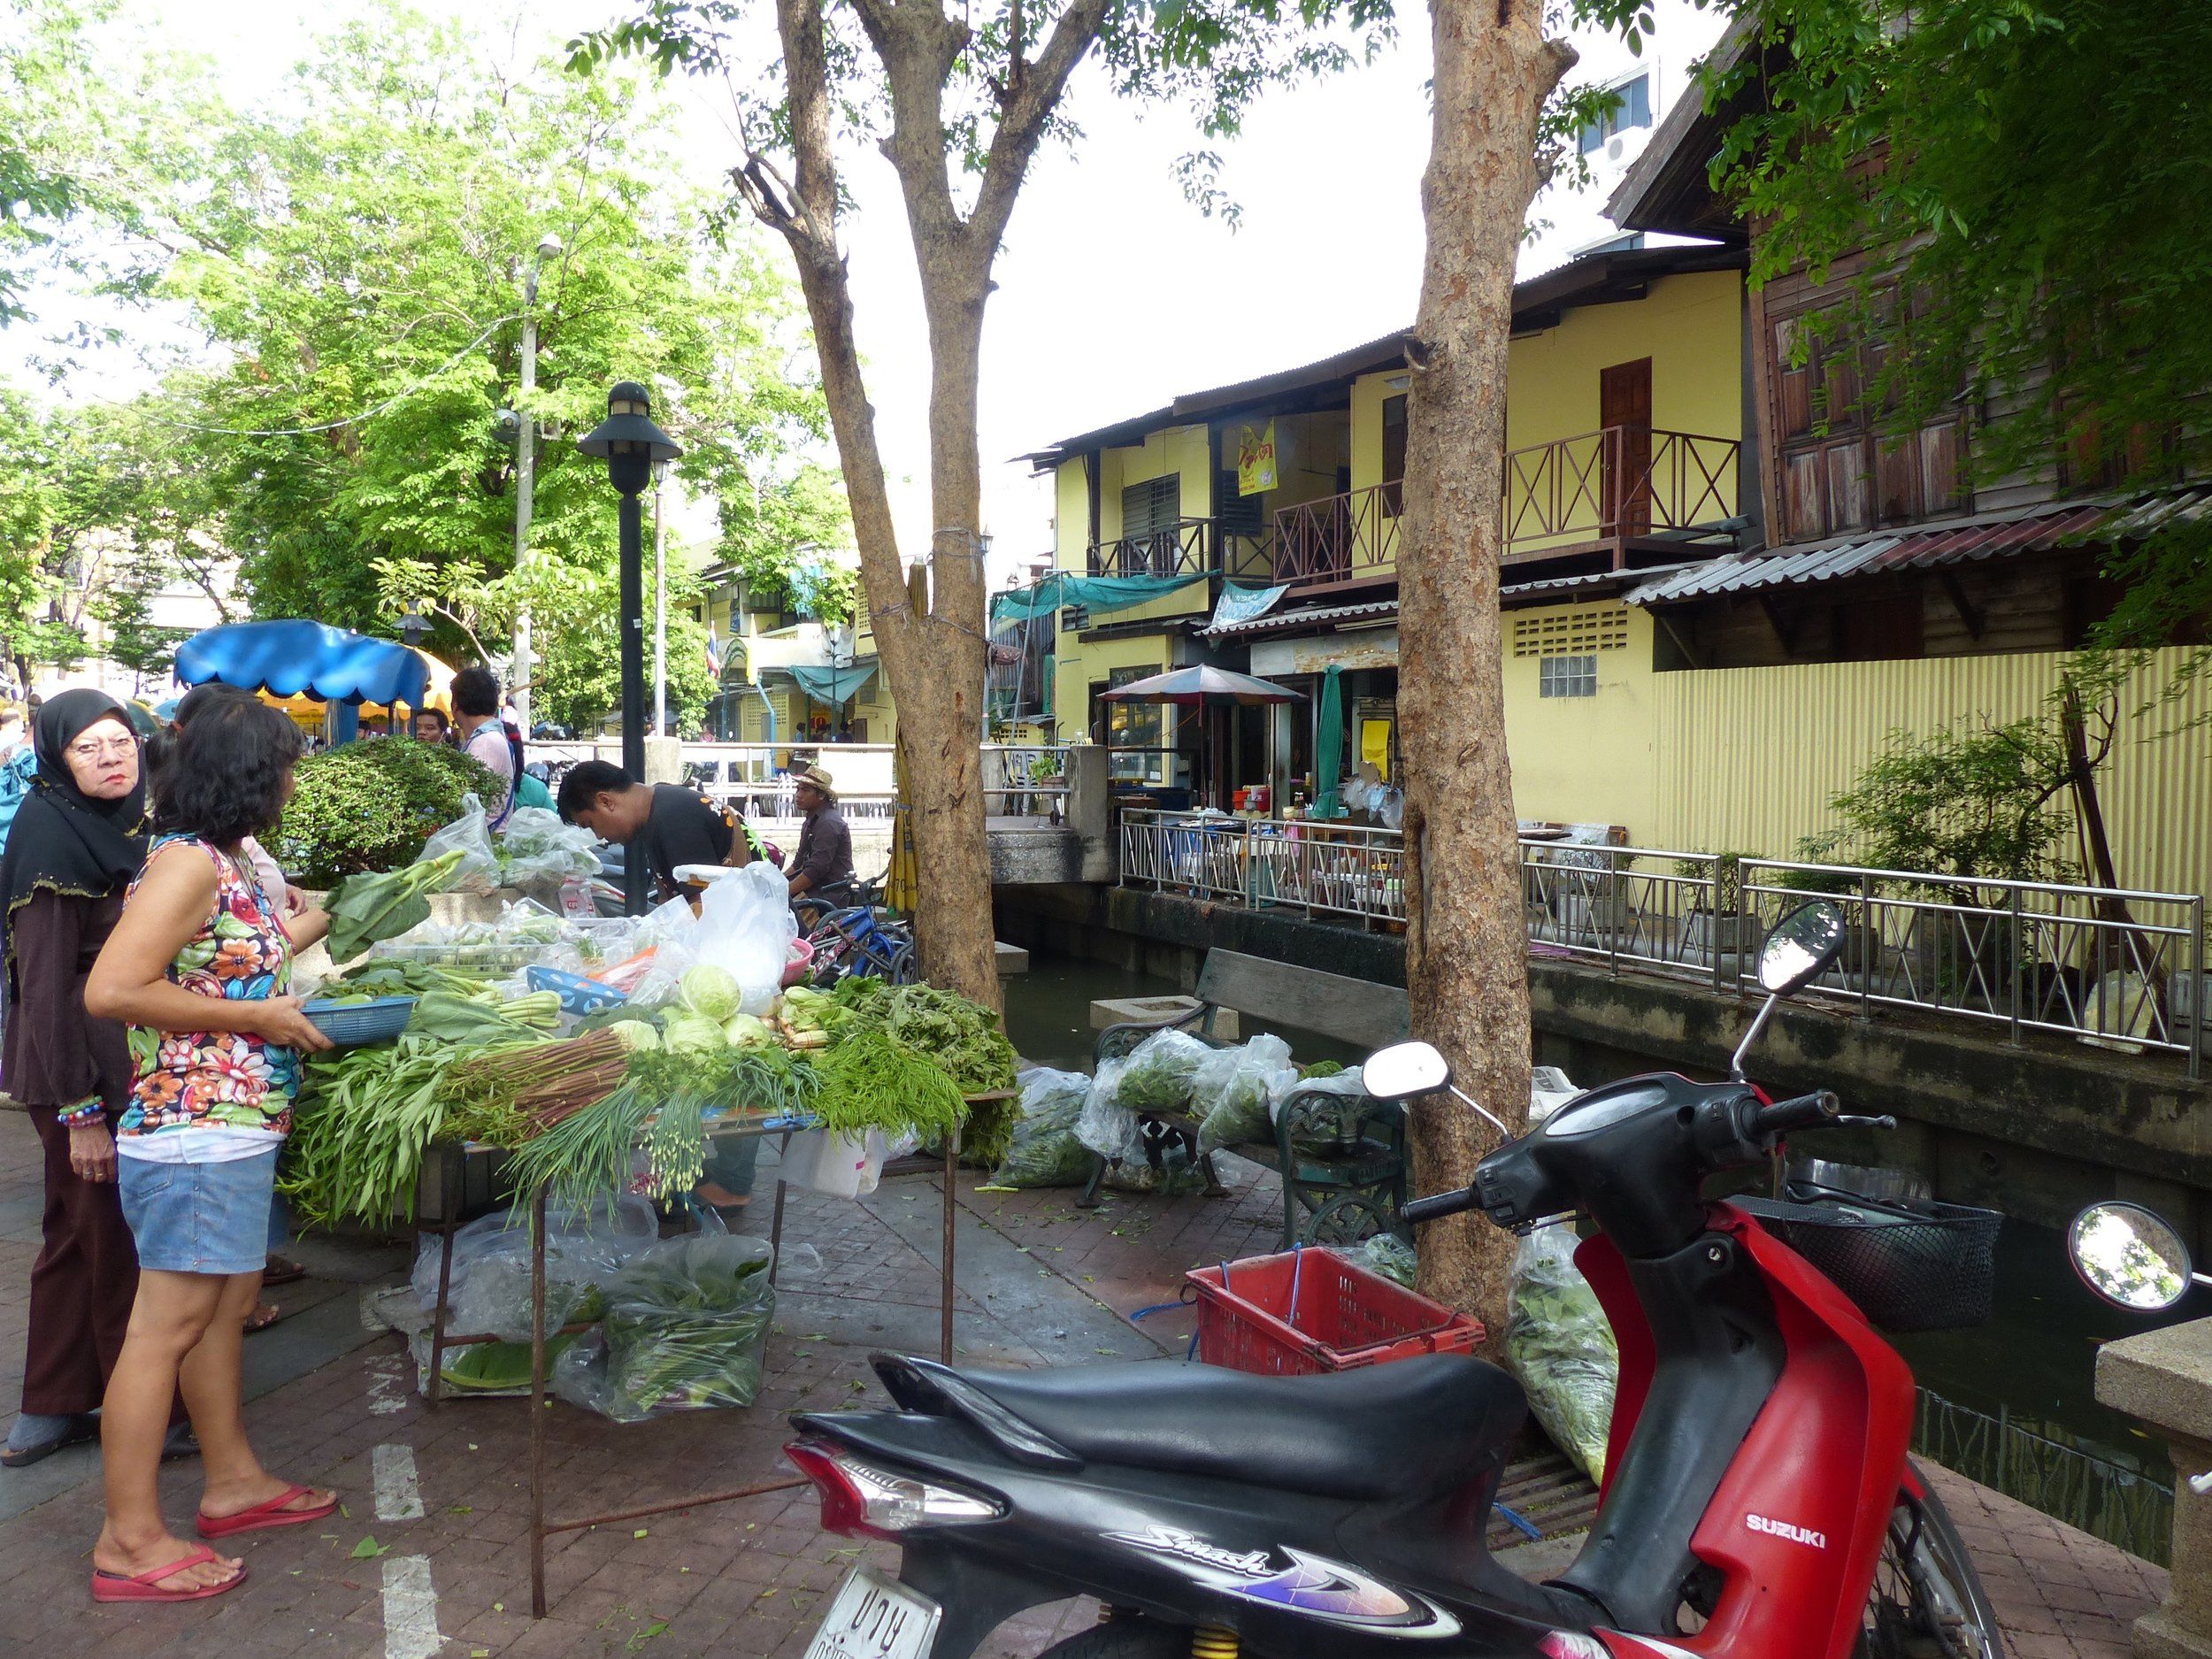 Markets in Bangkok often backed up to canals. Canals where freakishly giant monitor lizards swim, but more on that later.